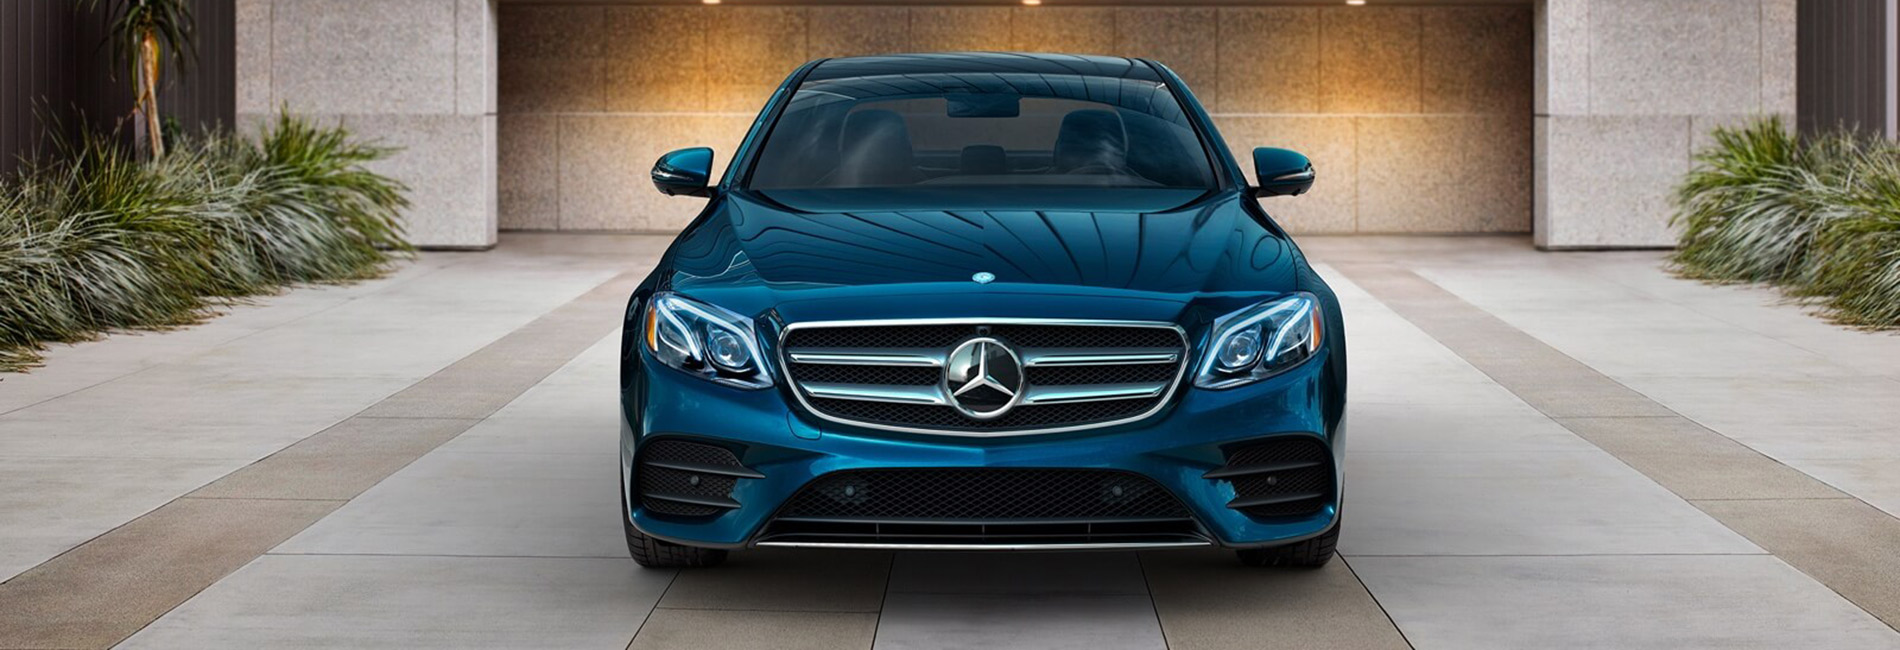 Discover certified pre owned mercedes benz edmonton west ltd for Mercedes benz pre owned vehicles